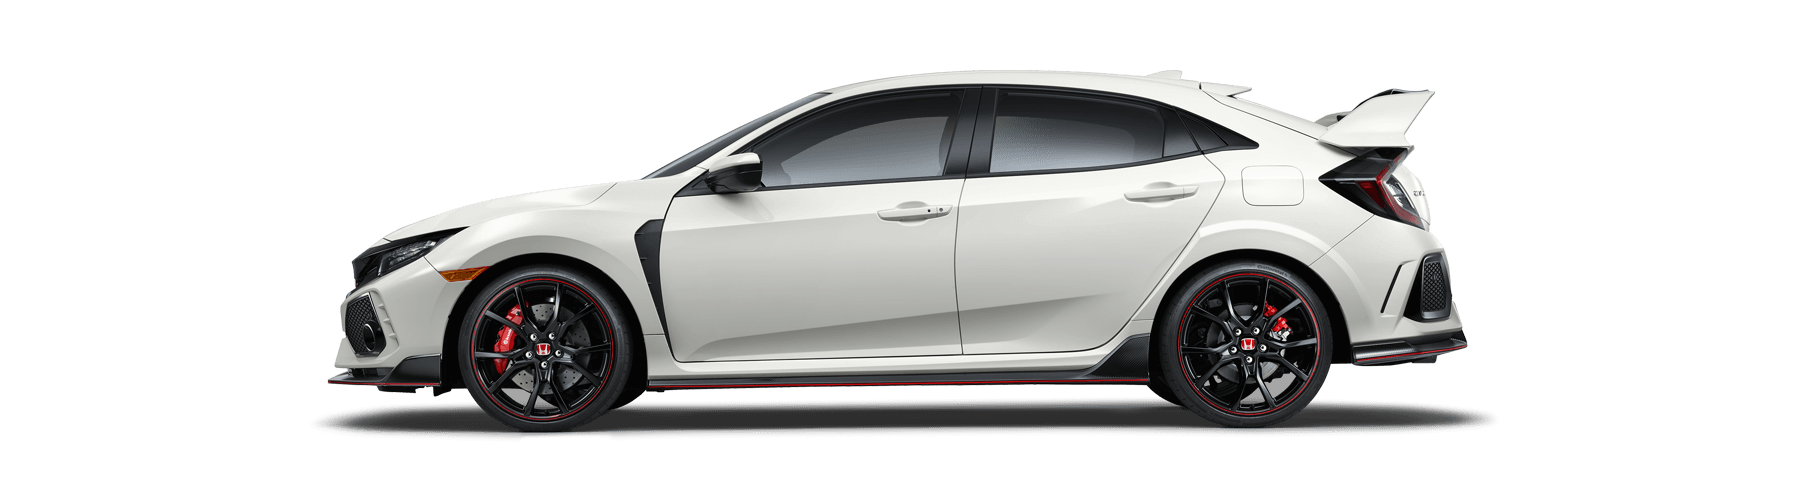 2017 Honda Civic Type R Side Profile